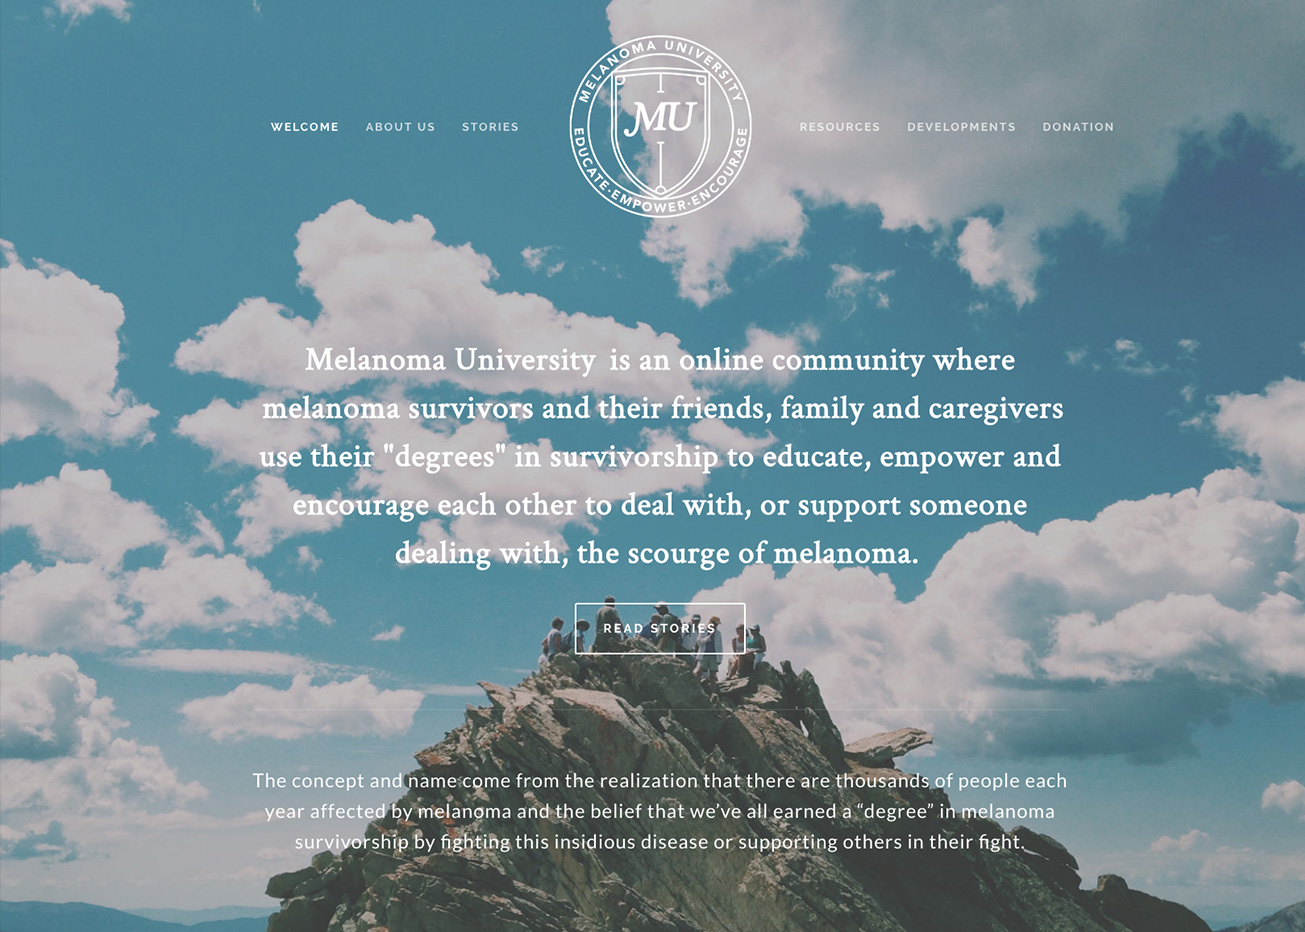 Homepage concept for Melanoma University